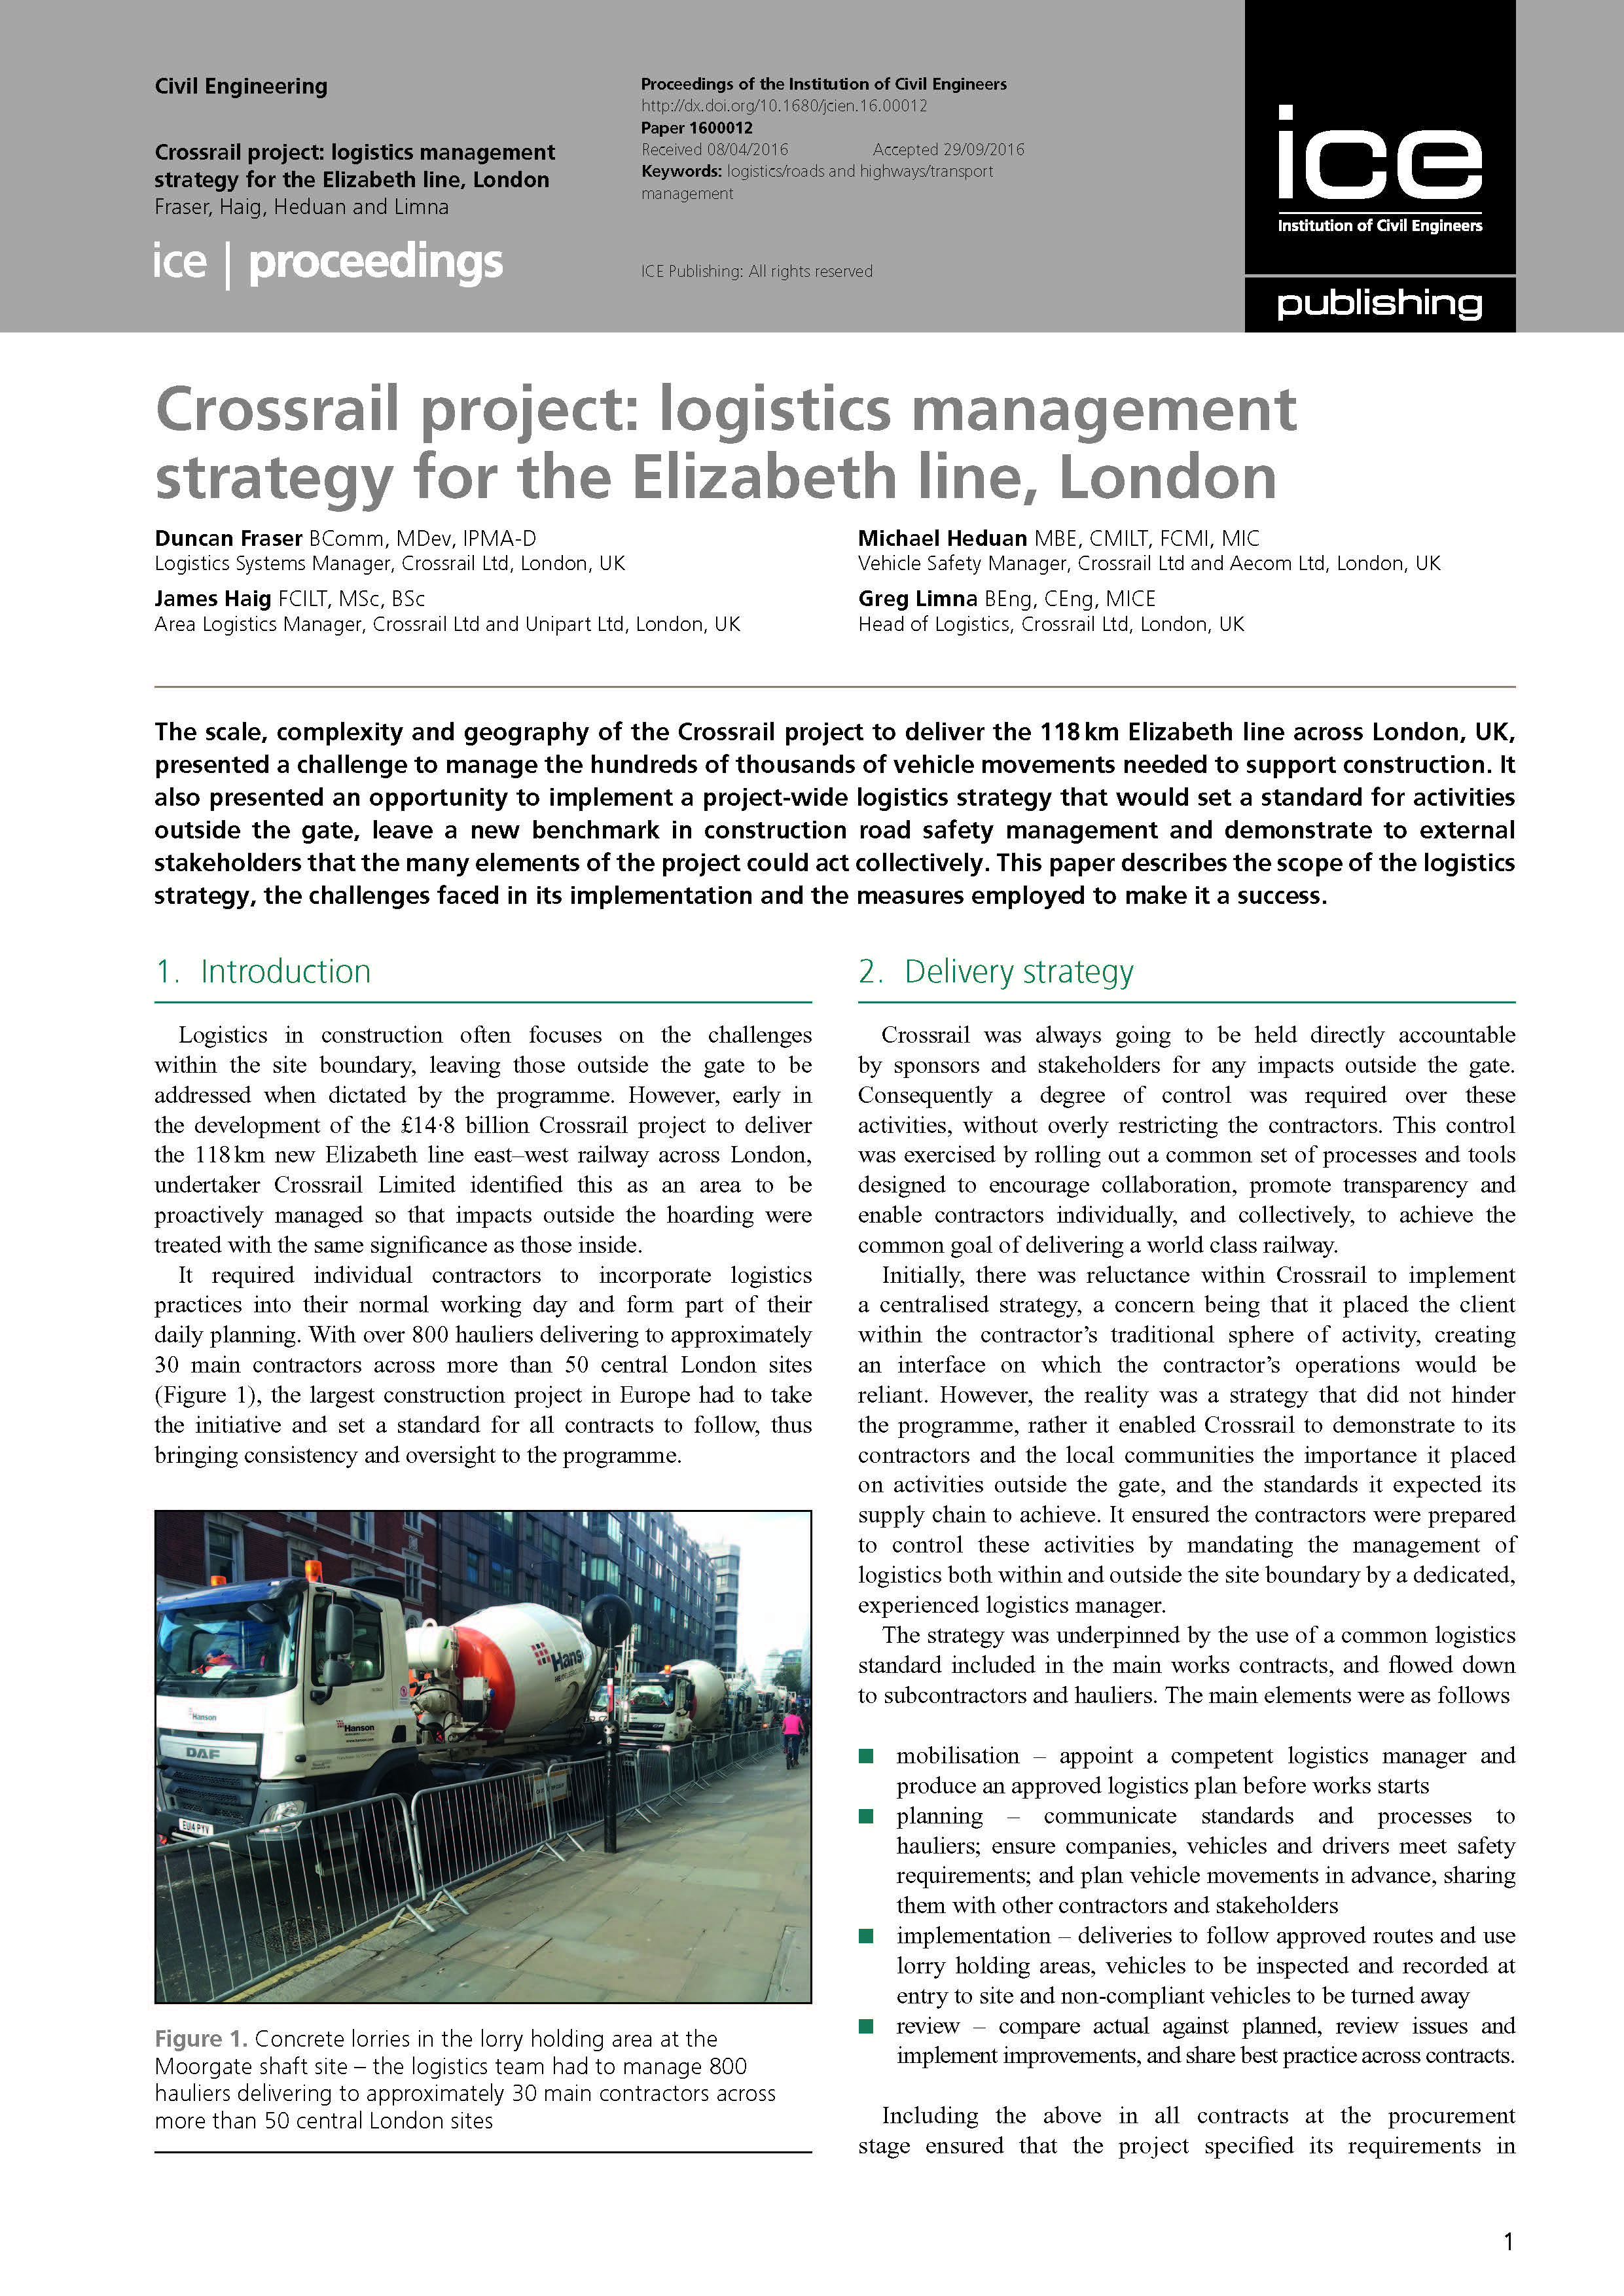 Crossrail project: logistics management strategy for the